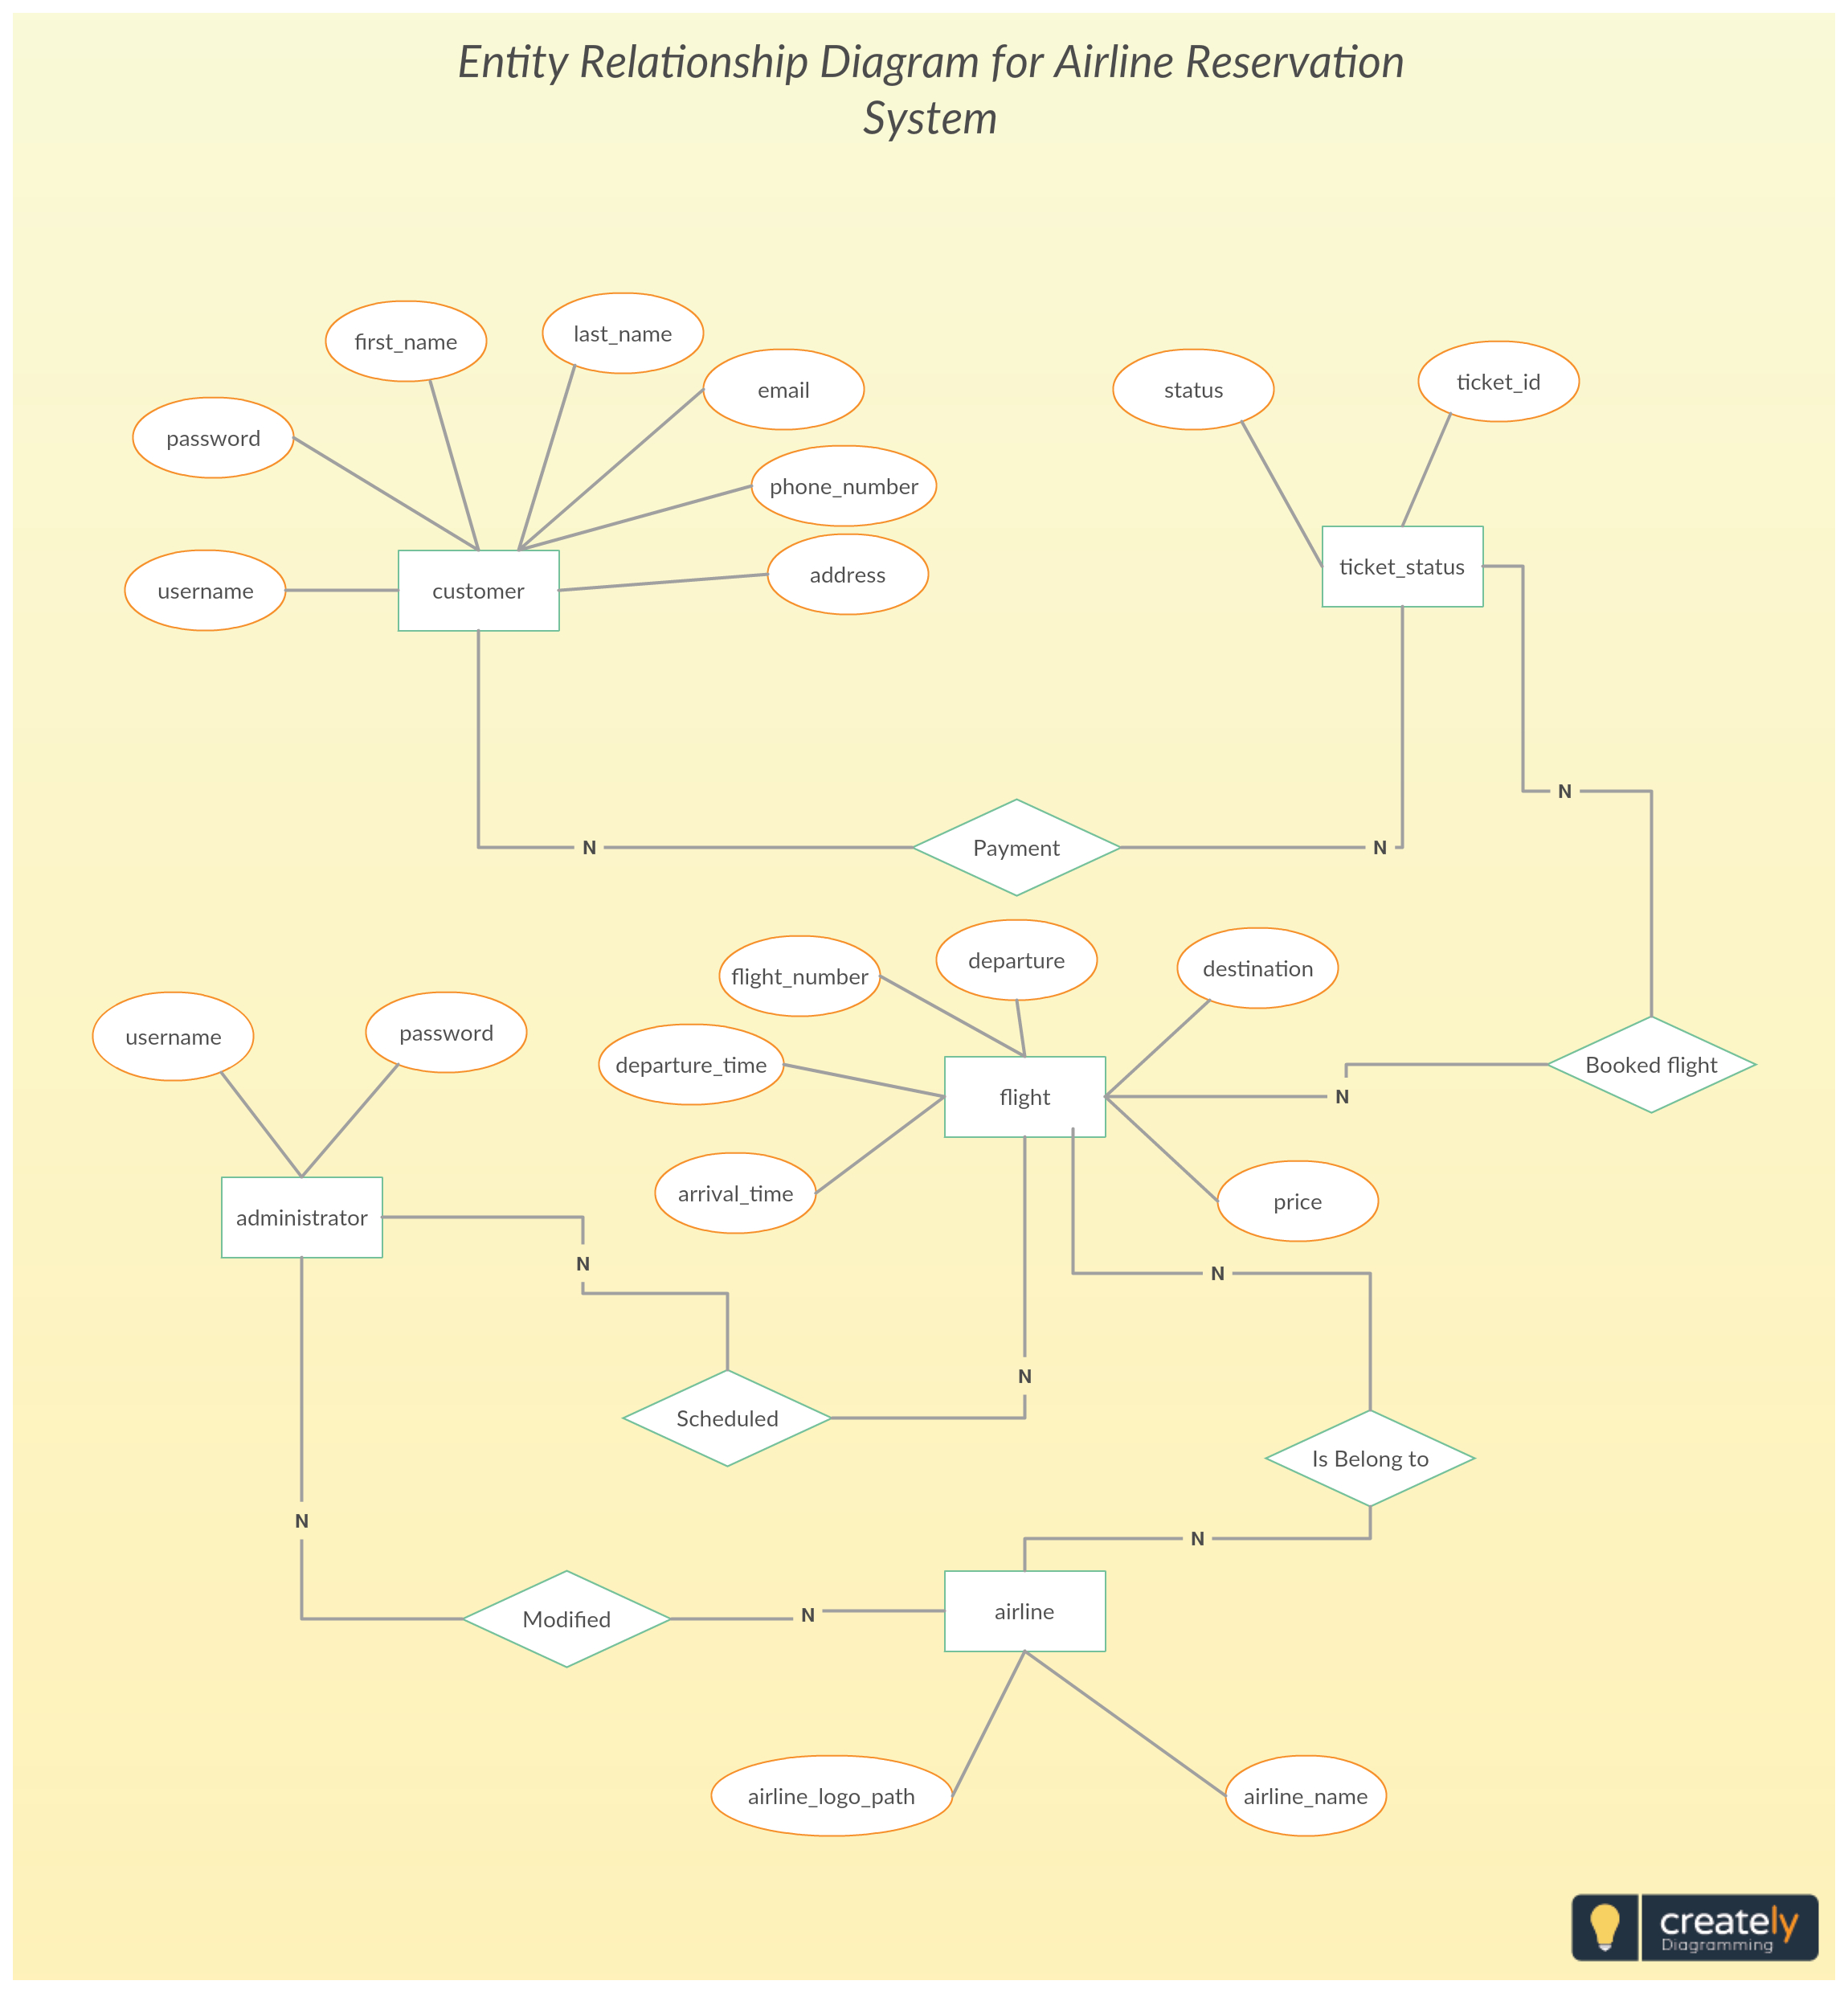 Entity Relationship Diagram For Airline Reservation System for Er Diagram Bold Line